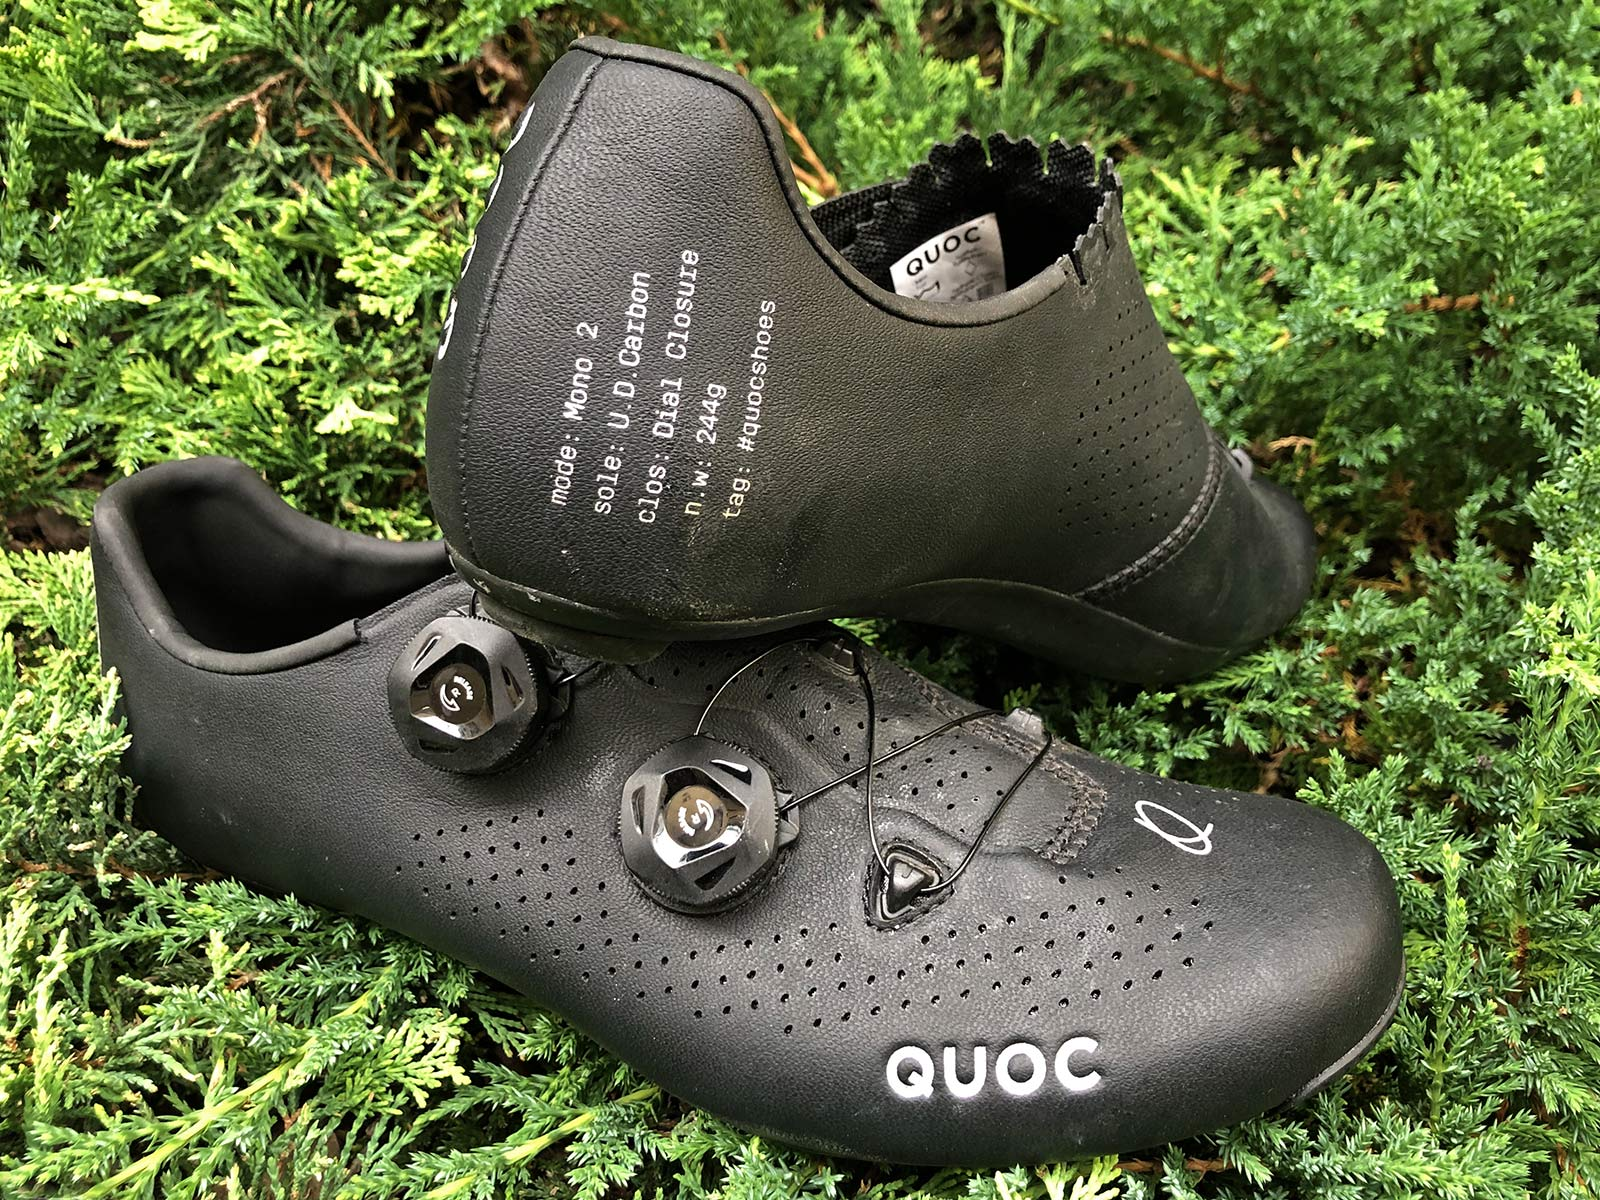 Quoc Mono II lightweight carbon-soled road cycling shoes Review,pair